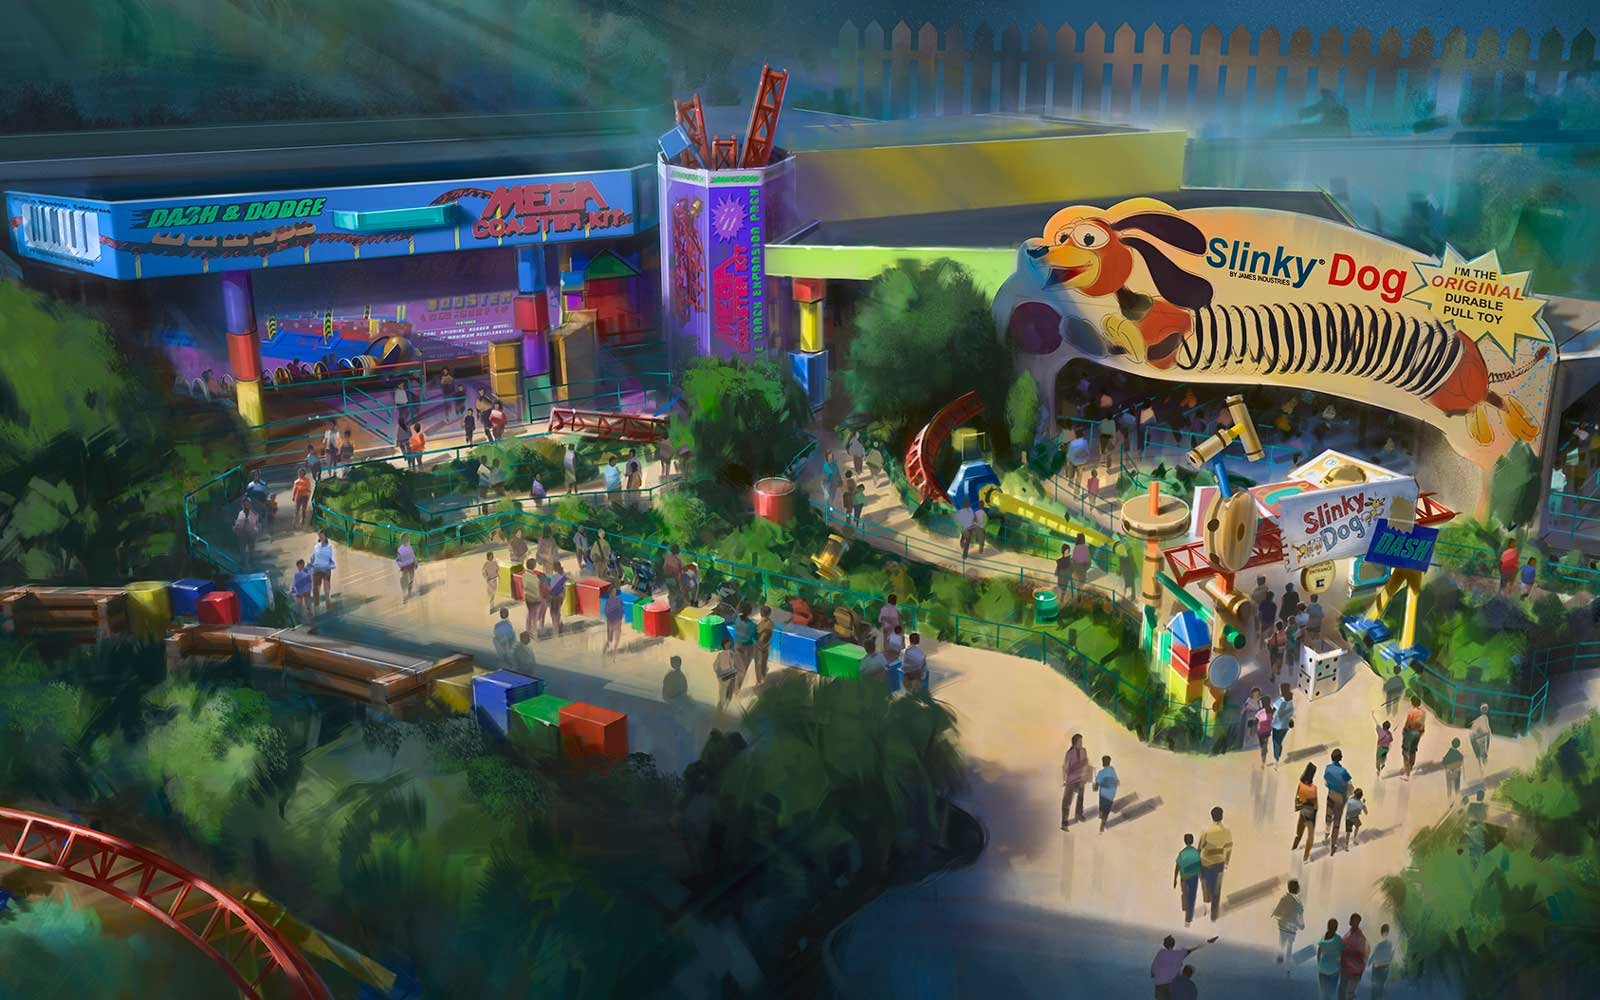 New Pixar Announcements for Disney Parks! #D23 #PixarPier #Disney